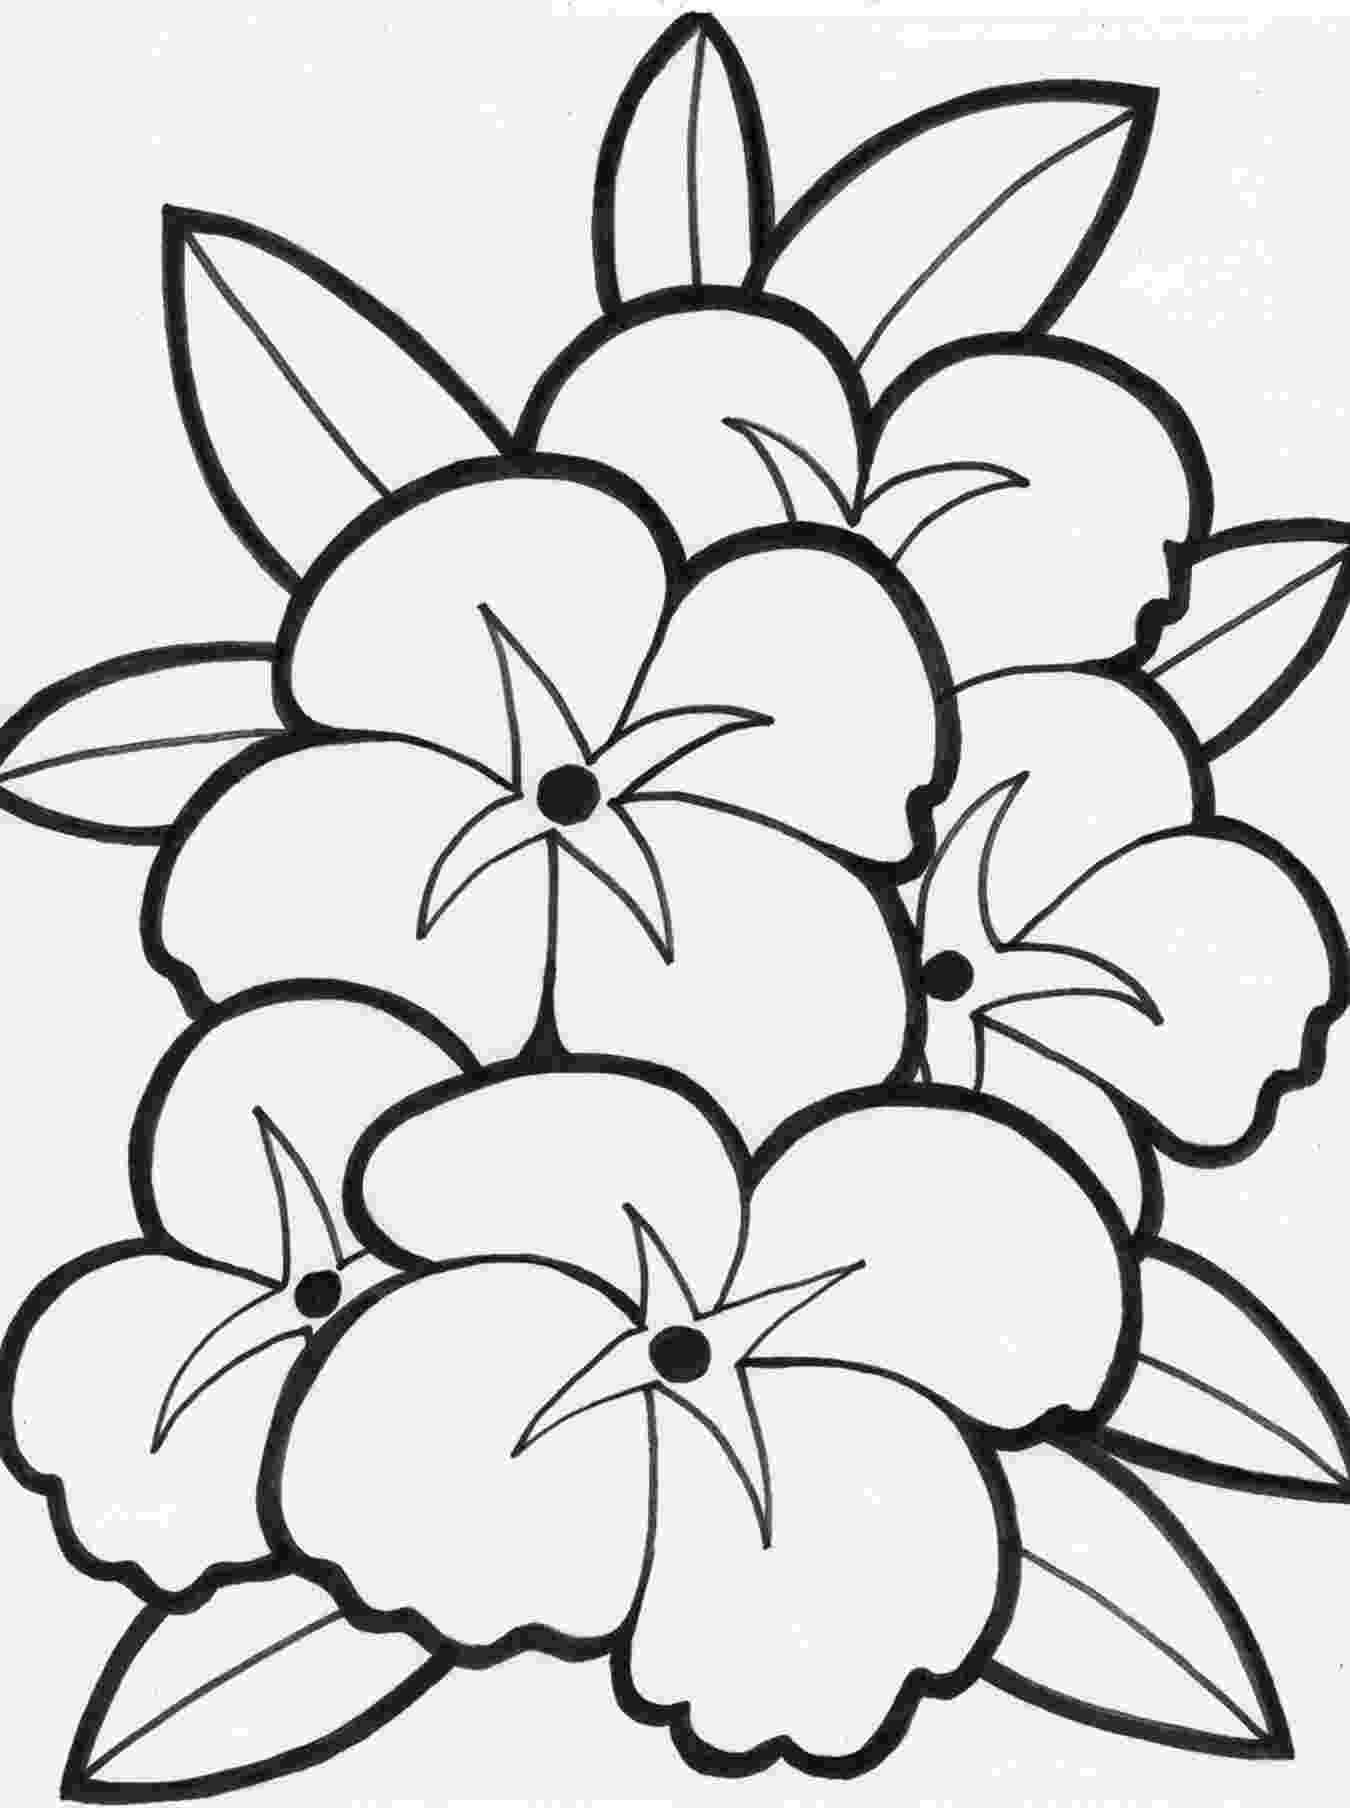 flowers coloring pages for kids free printable flower coloring pages for kids best for pages flowers coloring kids